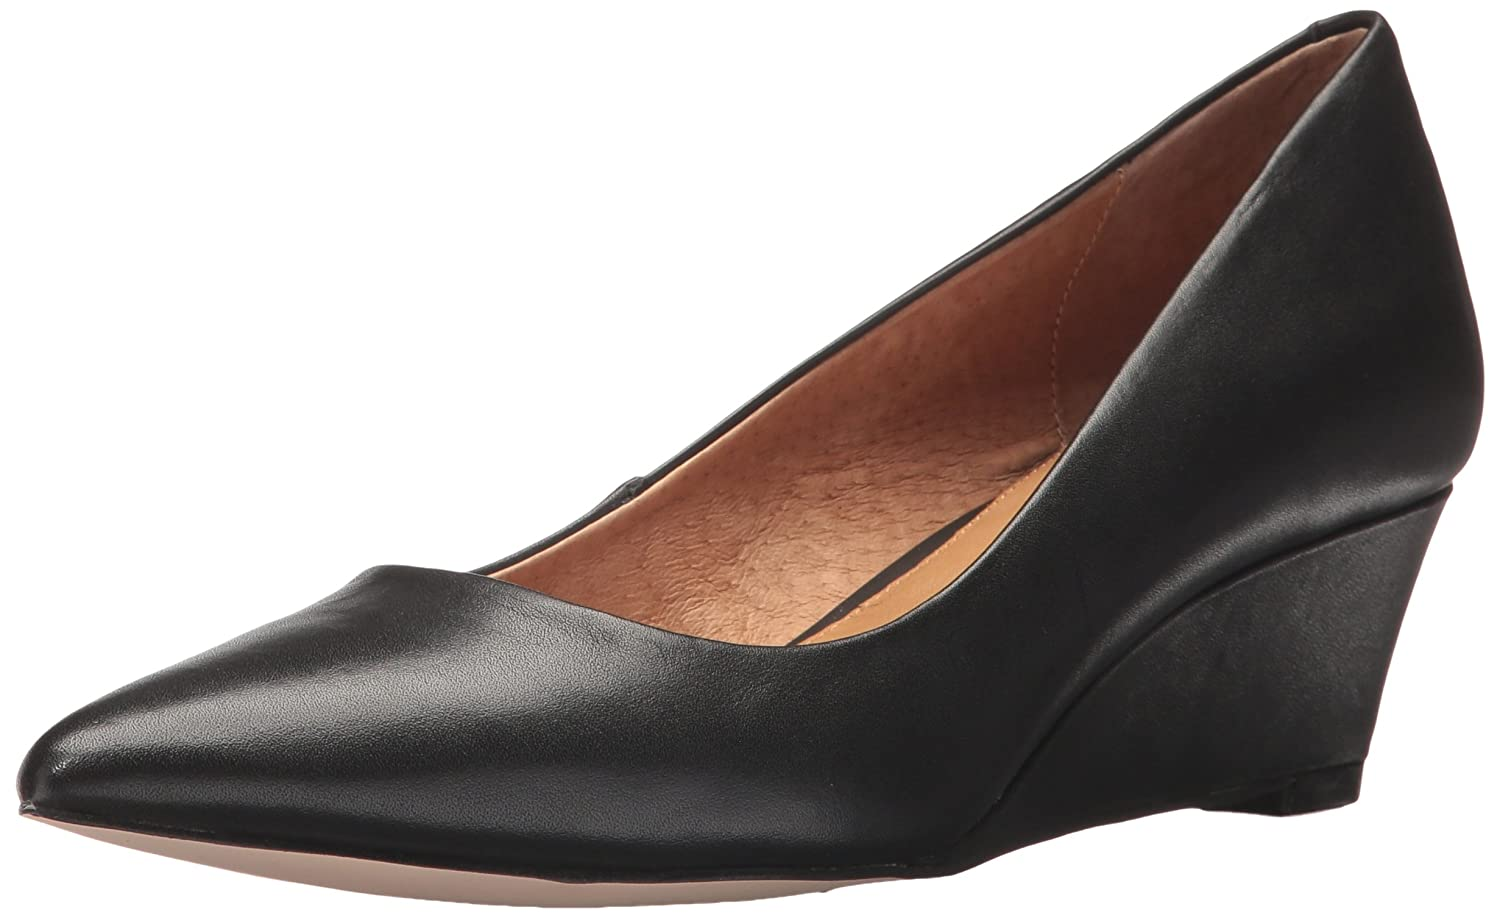 Opportunity Shoes - Corso Como Women's Nelly Pump B06WVH6YZ4 7 B(M) US|Black Soft Calf